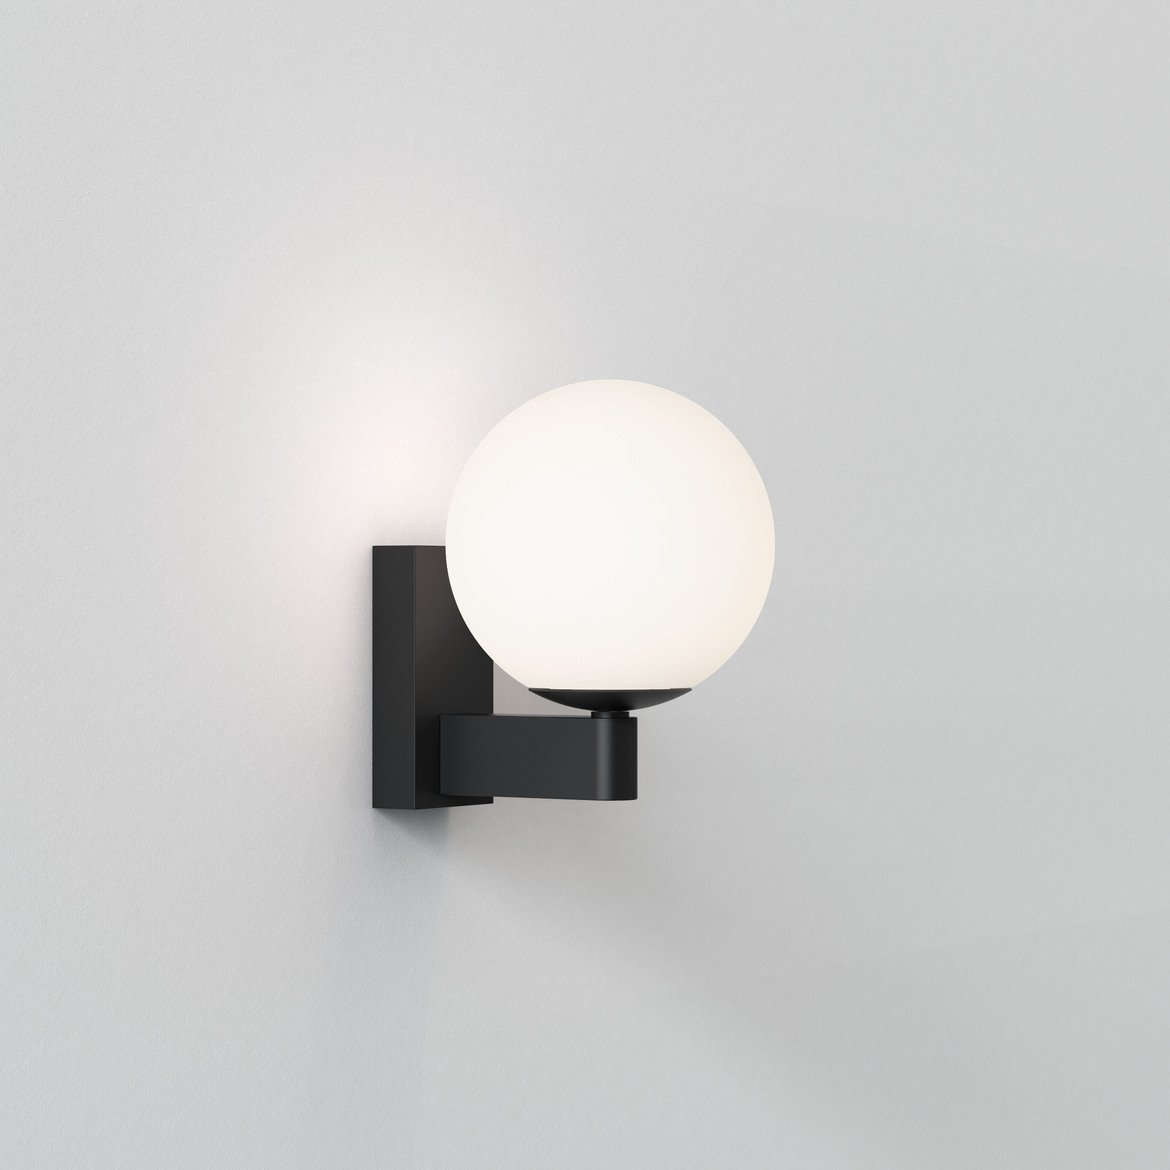 Astro Lighting 1168003 Sagara Black Wall Light